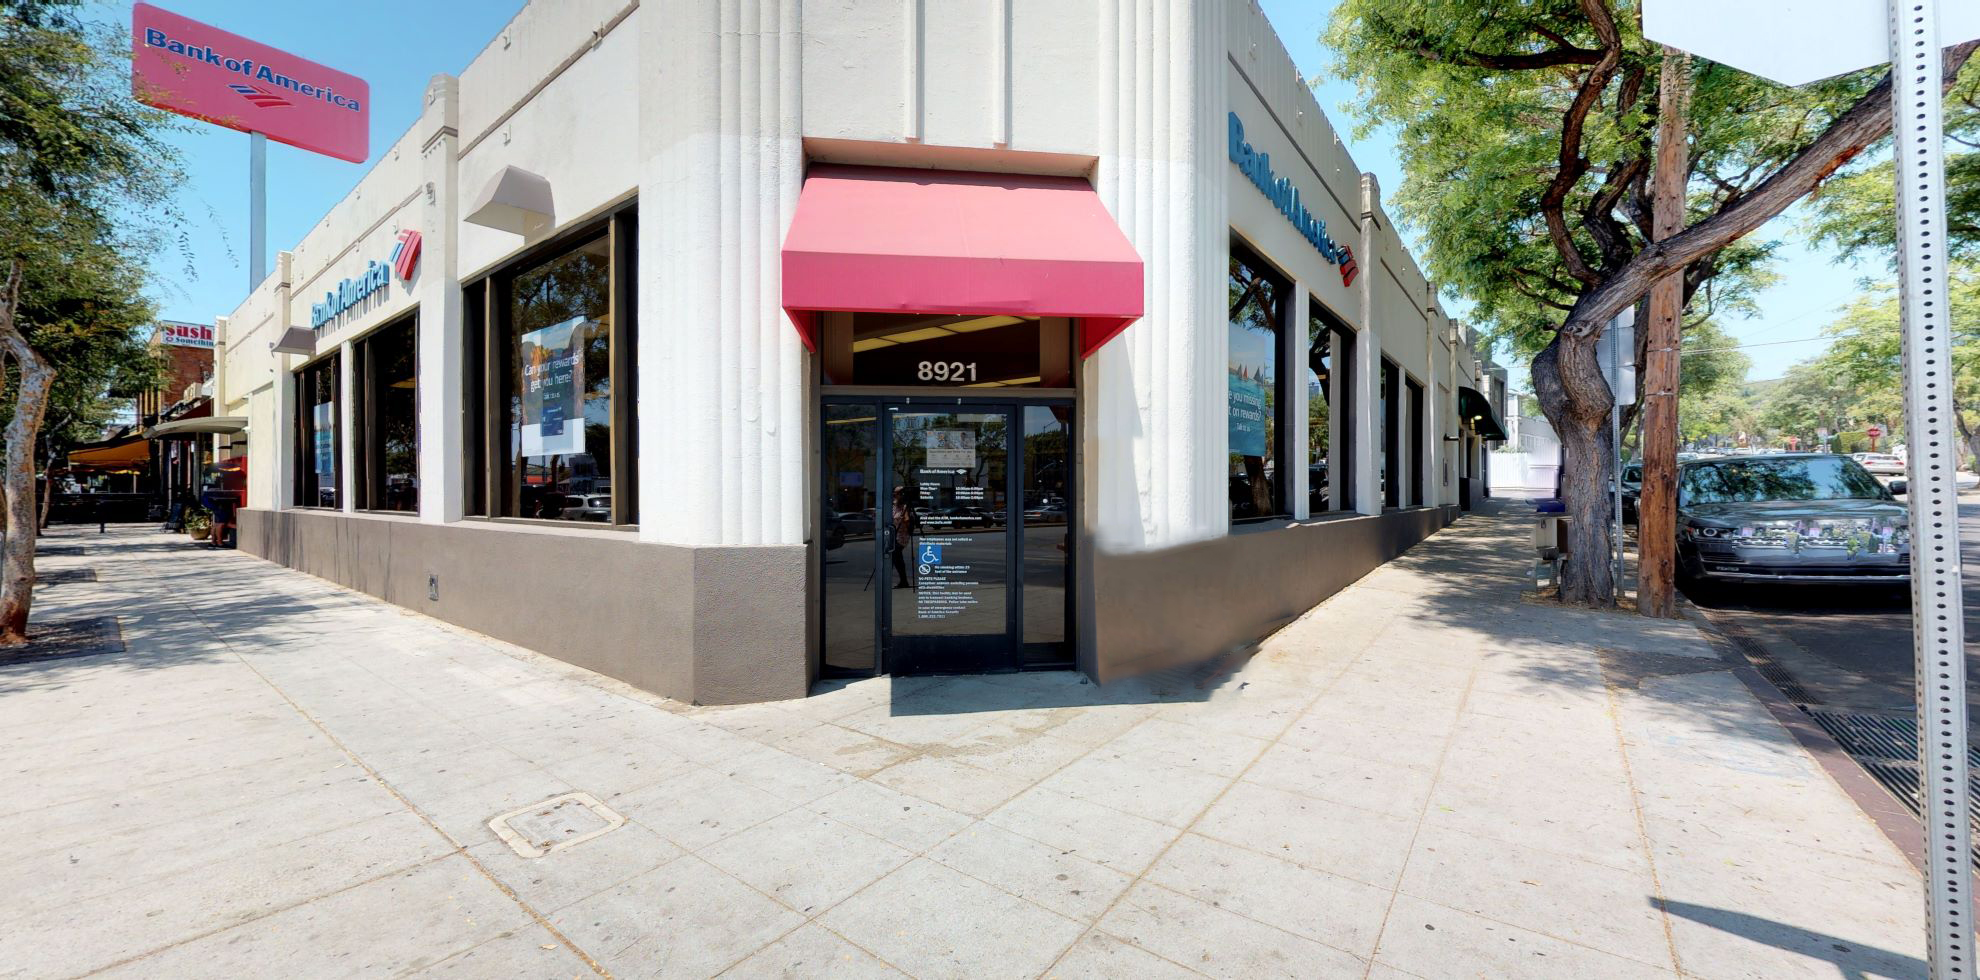 Bank of America financial center with walk-up ATM | 8921 Santa Monica Blvd, West Hollywood, CA 90069